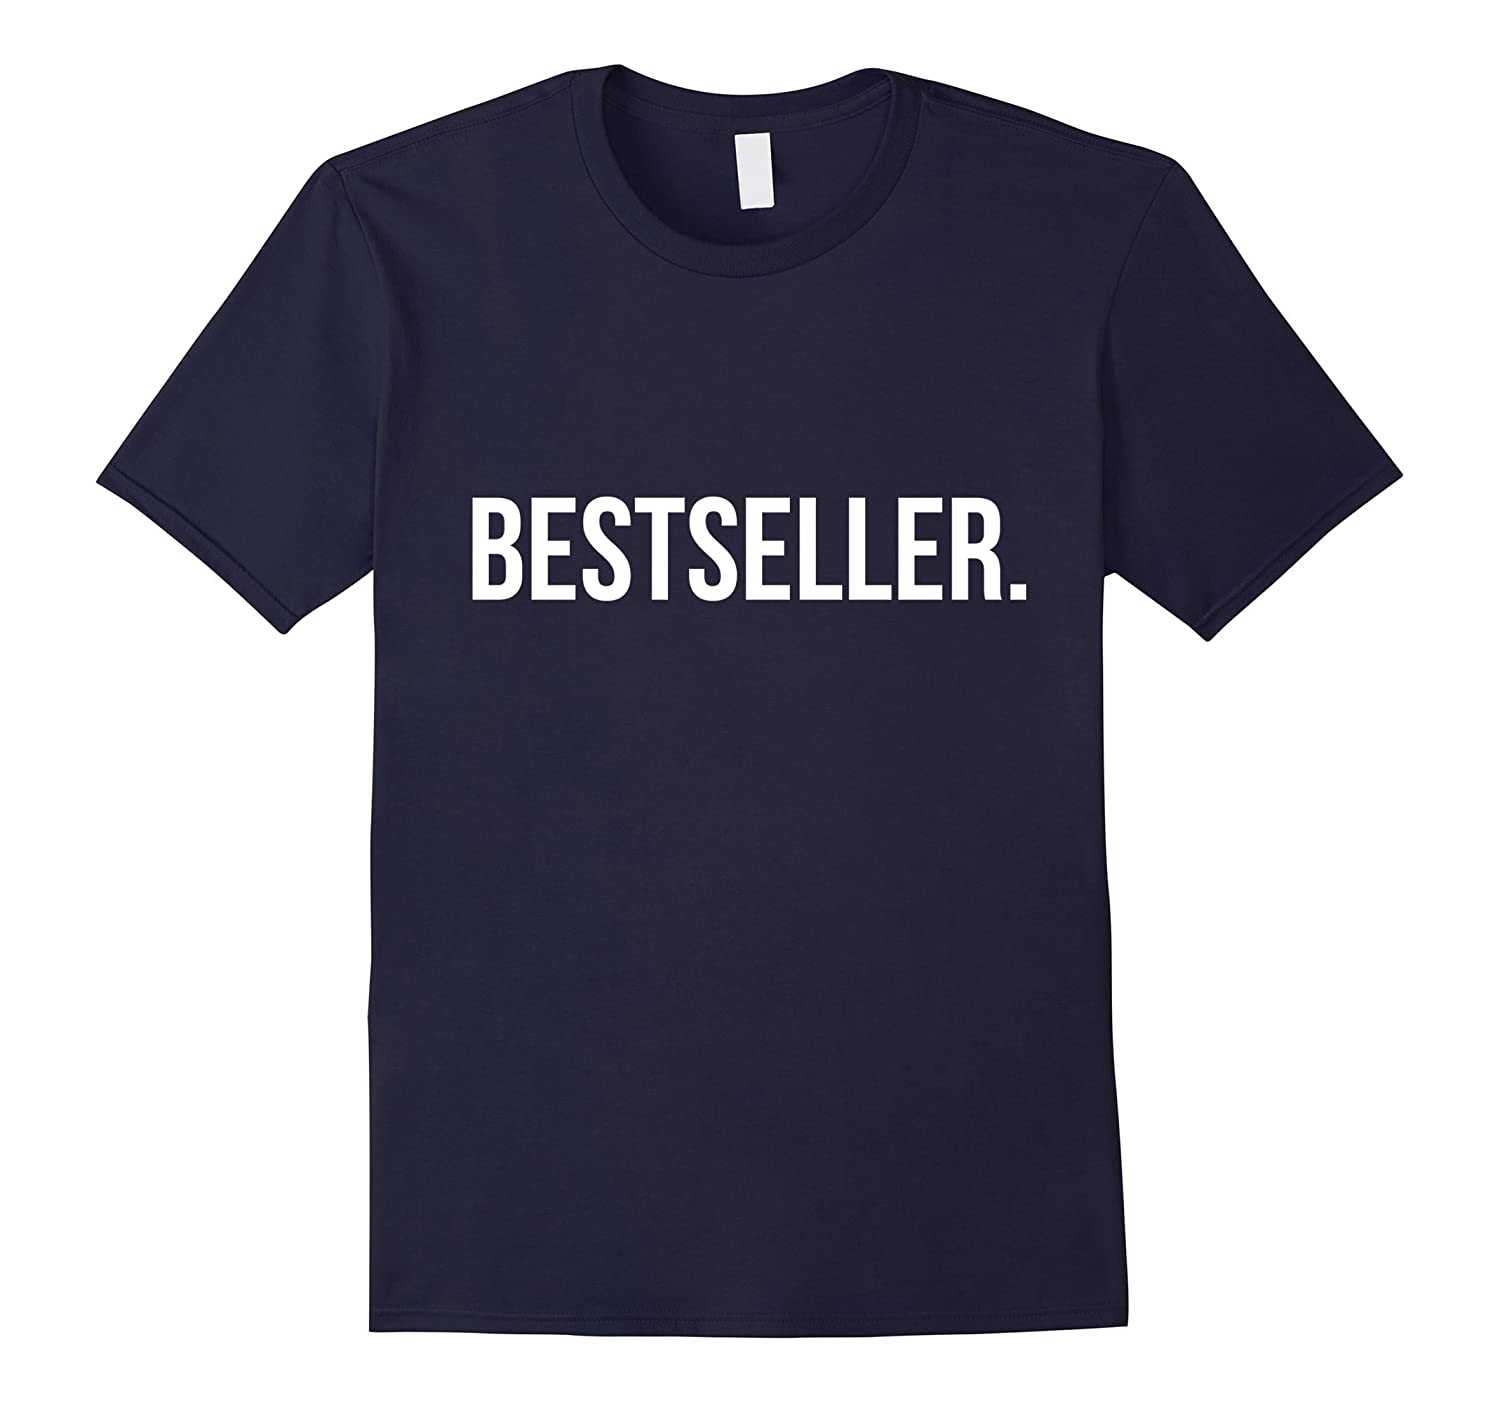 Bestseller - For book lovers - FUN Shirt Comedy - Men Women-CD